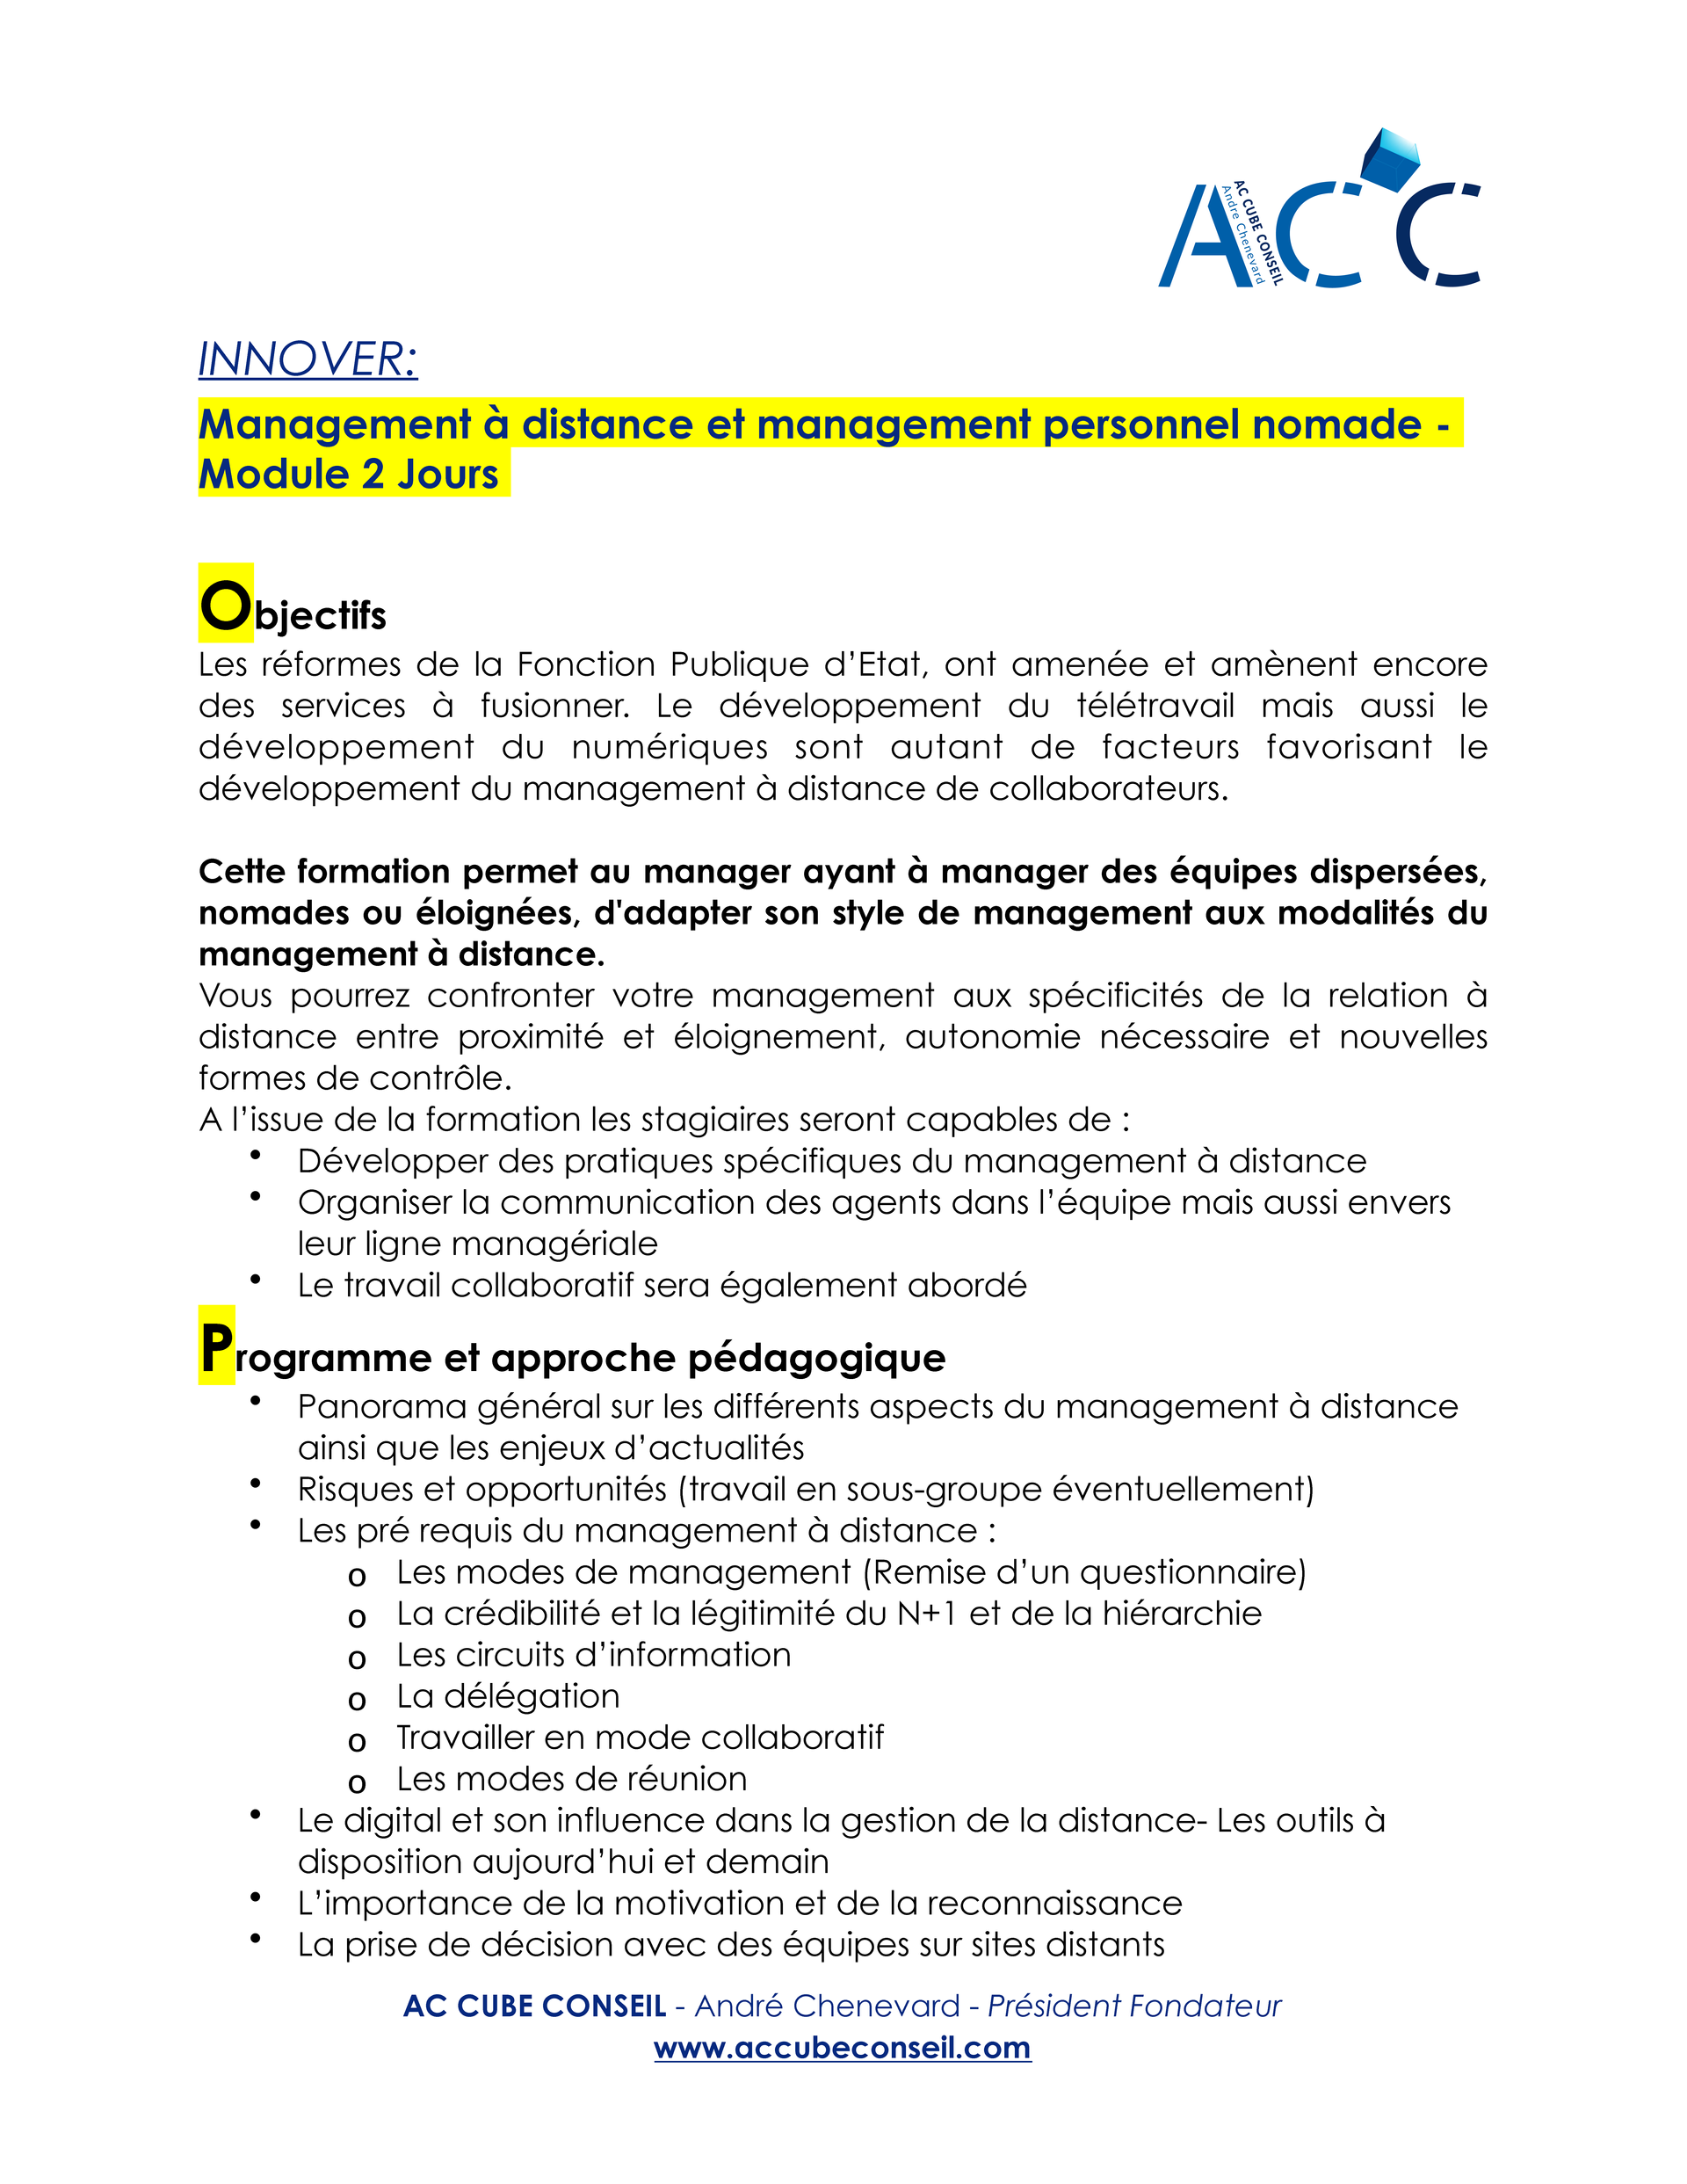 AC CUBE CONSEIL - INNOVER_Page_04.png